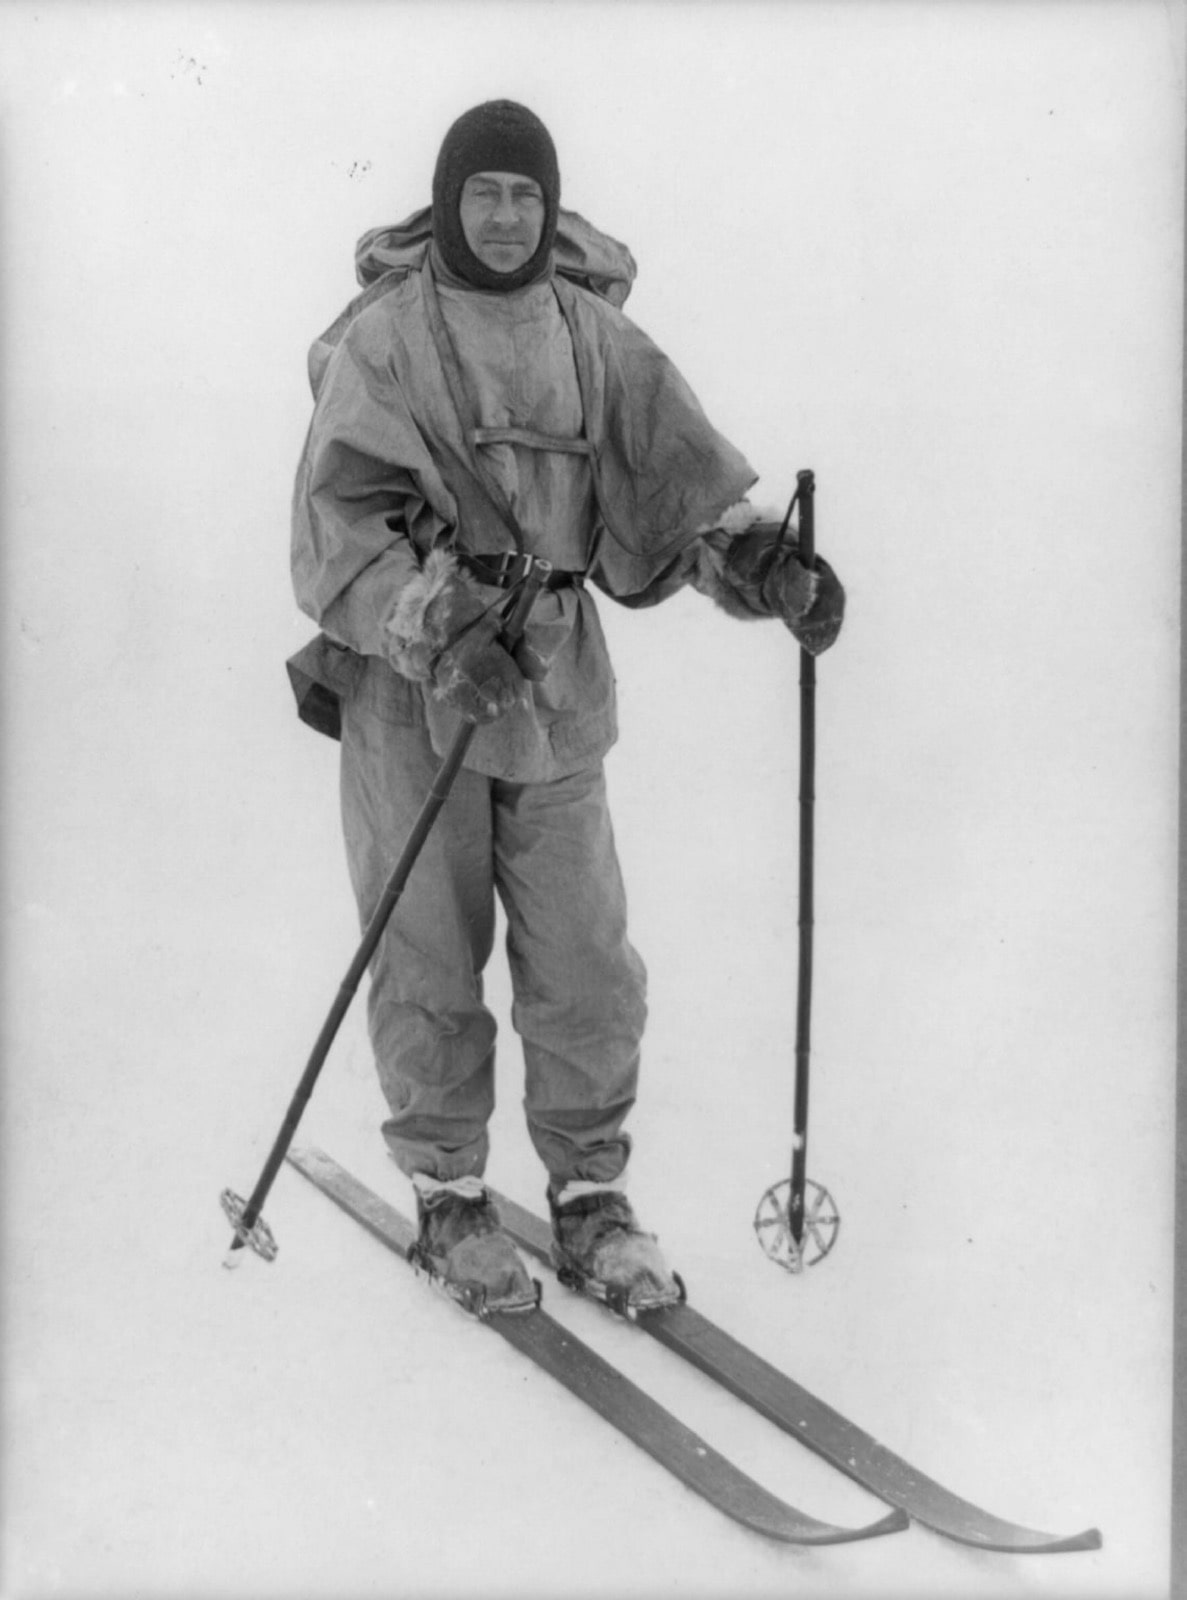 Captain Robert Falcon Scott, on skis in the Antarctic. Leading the 1901 to 1904 Discovery Expedition, Scott and his crew were the first to discover the Dry Valleys. This photo was taken on his final ill-fated attempt to be the first to reach the geographic South Pole during the 1910 British Antarctic Expedition, also known as the  Terra Nova  Expedition. Photo by Herbert G. Ponting, 1913/ Library of Congress